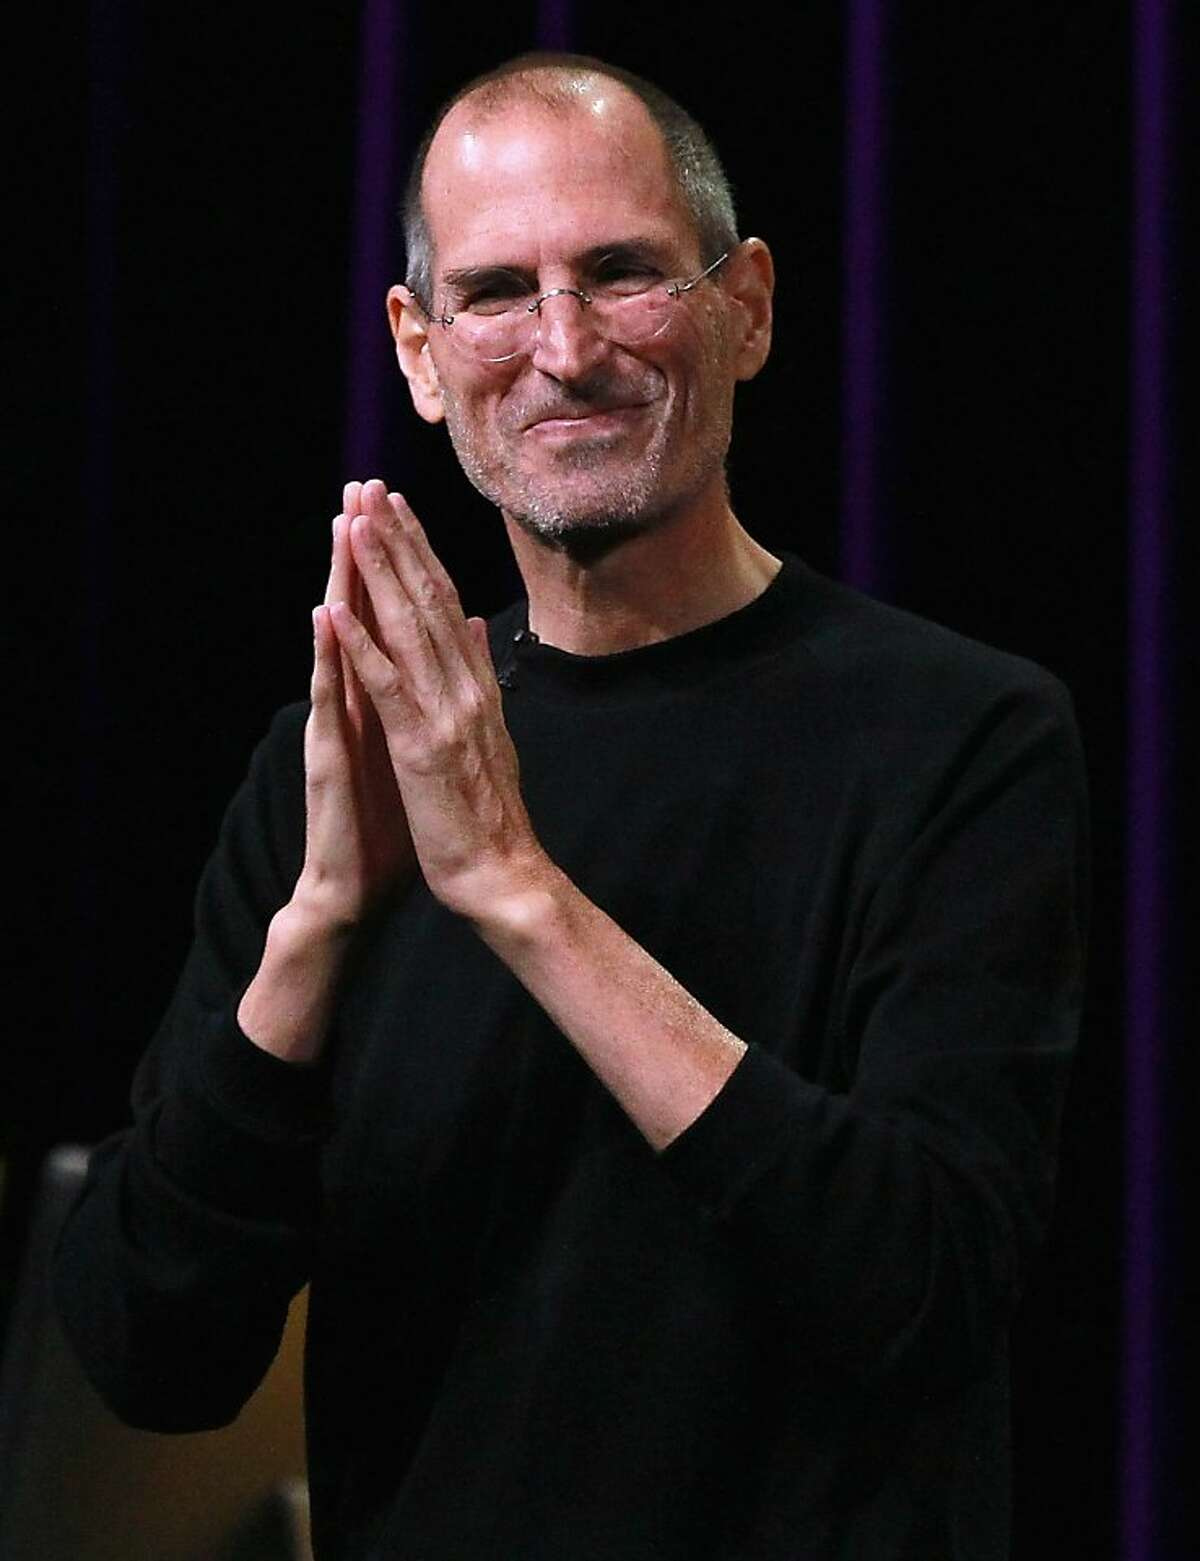 SAN FRANCISCO - FILE: Apple CEO Steve Jobs speaks at an Apple Special Event at the Yerba Buena Center for the Arts September 1, 2010 in San Francisco, California. Its been reported that Steve Jobs has resigned as the CEO of Apple August 24, 2011. (Photo by Justin Sullivan/Getty Images) Ran on: 08-25-2011 Photo caption Dummy text goes here. Dummy text goes here. Dummy text goes here. Dummy text goes here. Dummy text goes here. Dummy text goes here. Dummy text goes here. Dummy text goes here.###Photo: edit25_jobs_PH1314057600Getty Images North America###Live Caption:SAN FRANCISCO - FILE: Apple CEO Steve Jobs speaks at an Apple Special Event at the Yerba Buena Center for the Arts September 1, 2010 in San Francisco, California. Its been reported that Steve Jobs has resigned as the CEO of Apple August 24, 2011.###Caption History:SAN FRANCISCO - FILE: Apple CEO Steve Jobs speaks at an Apple Special Event at the Yerba Buena Center for the Arts September 1, 2010 in San Francisco, California. Its been reported that Steve Jobs has resigned as the CEO of Apple August 24, 2011. (Photo by Justin Sullivan-Getty Images)###Notes:FILE: Steve Jobs Resigns As CEO of Apple###Special Instructions:(FILE) Ran on: 08-25-2011 Photo caption Dummy text goes here. Dummy text goes here. Dummy text goes here. Dummy text goes here. Dummy text goes here. Dummy text goes here. Dummy text goes here. Dummy text goes here.###Photo: edit25_jobs_PH1314057600Getty Images North America###Live Caption:SAN FRANCISCO - FILE: Apple CEO Steve Jobs speaks at an Apple Special Event at the Yerba Buena Center for the Arts September 1, 2010 in...